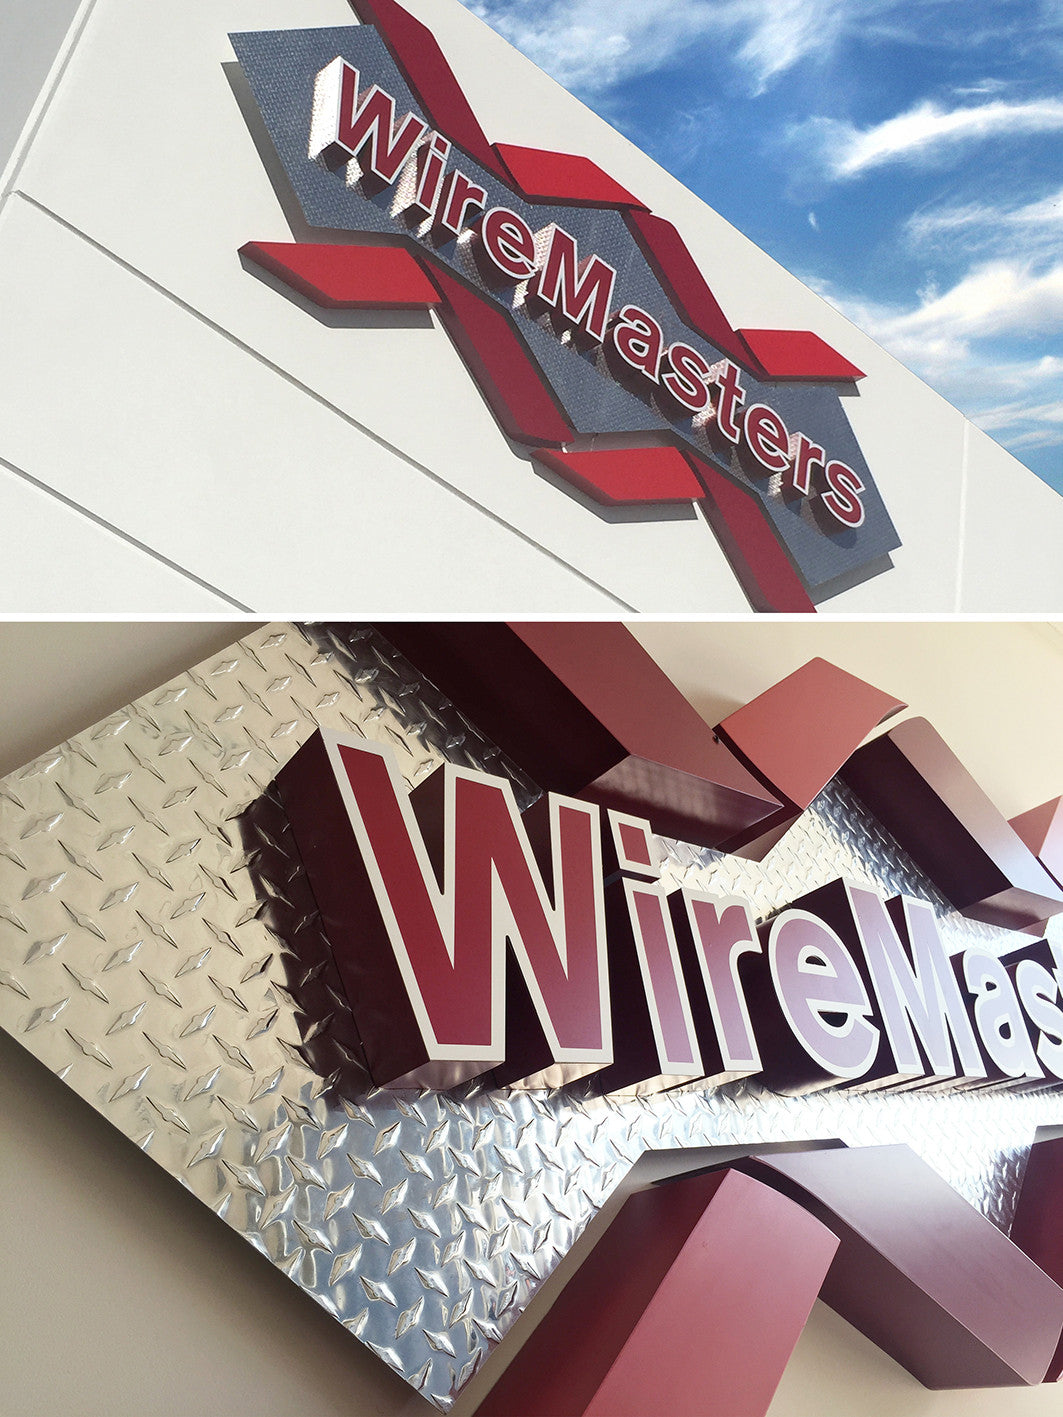 WIRE MASTERS